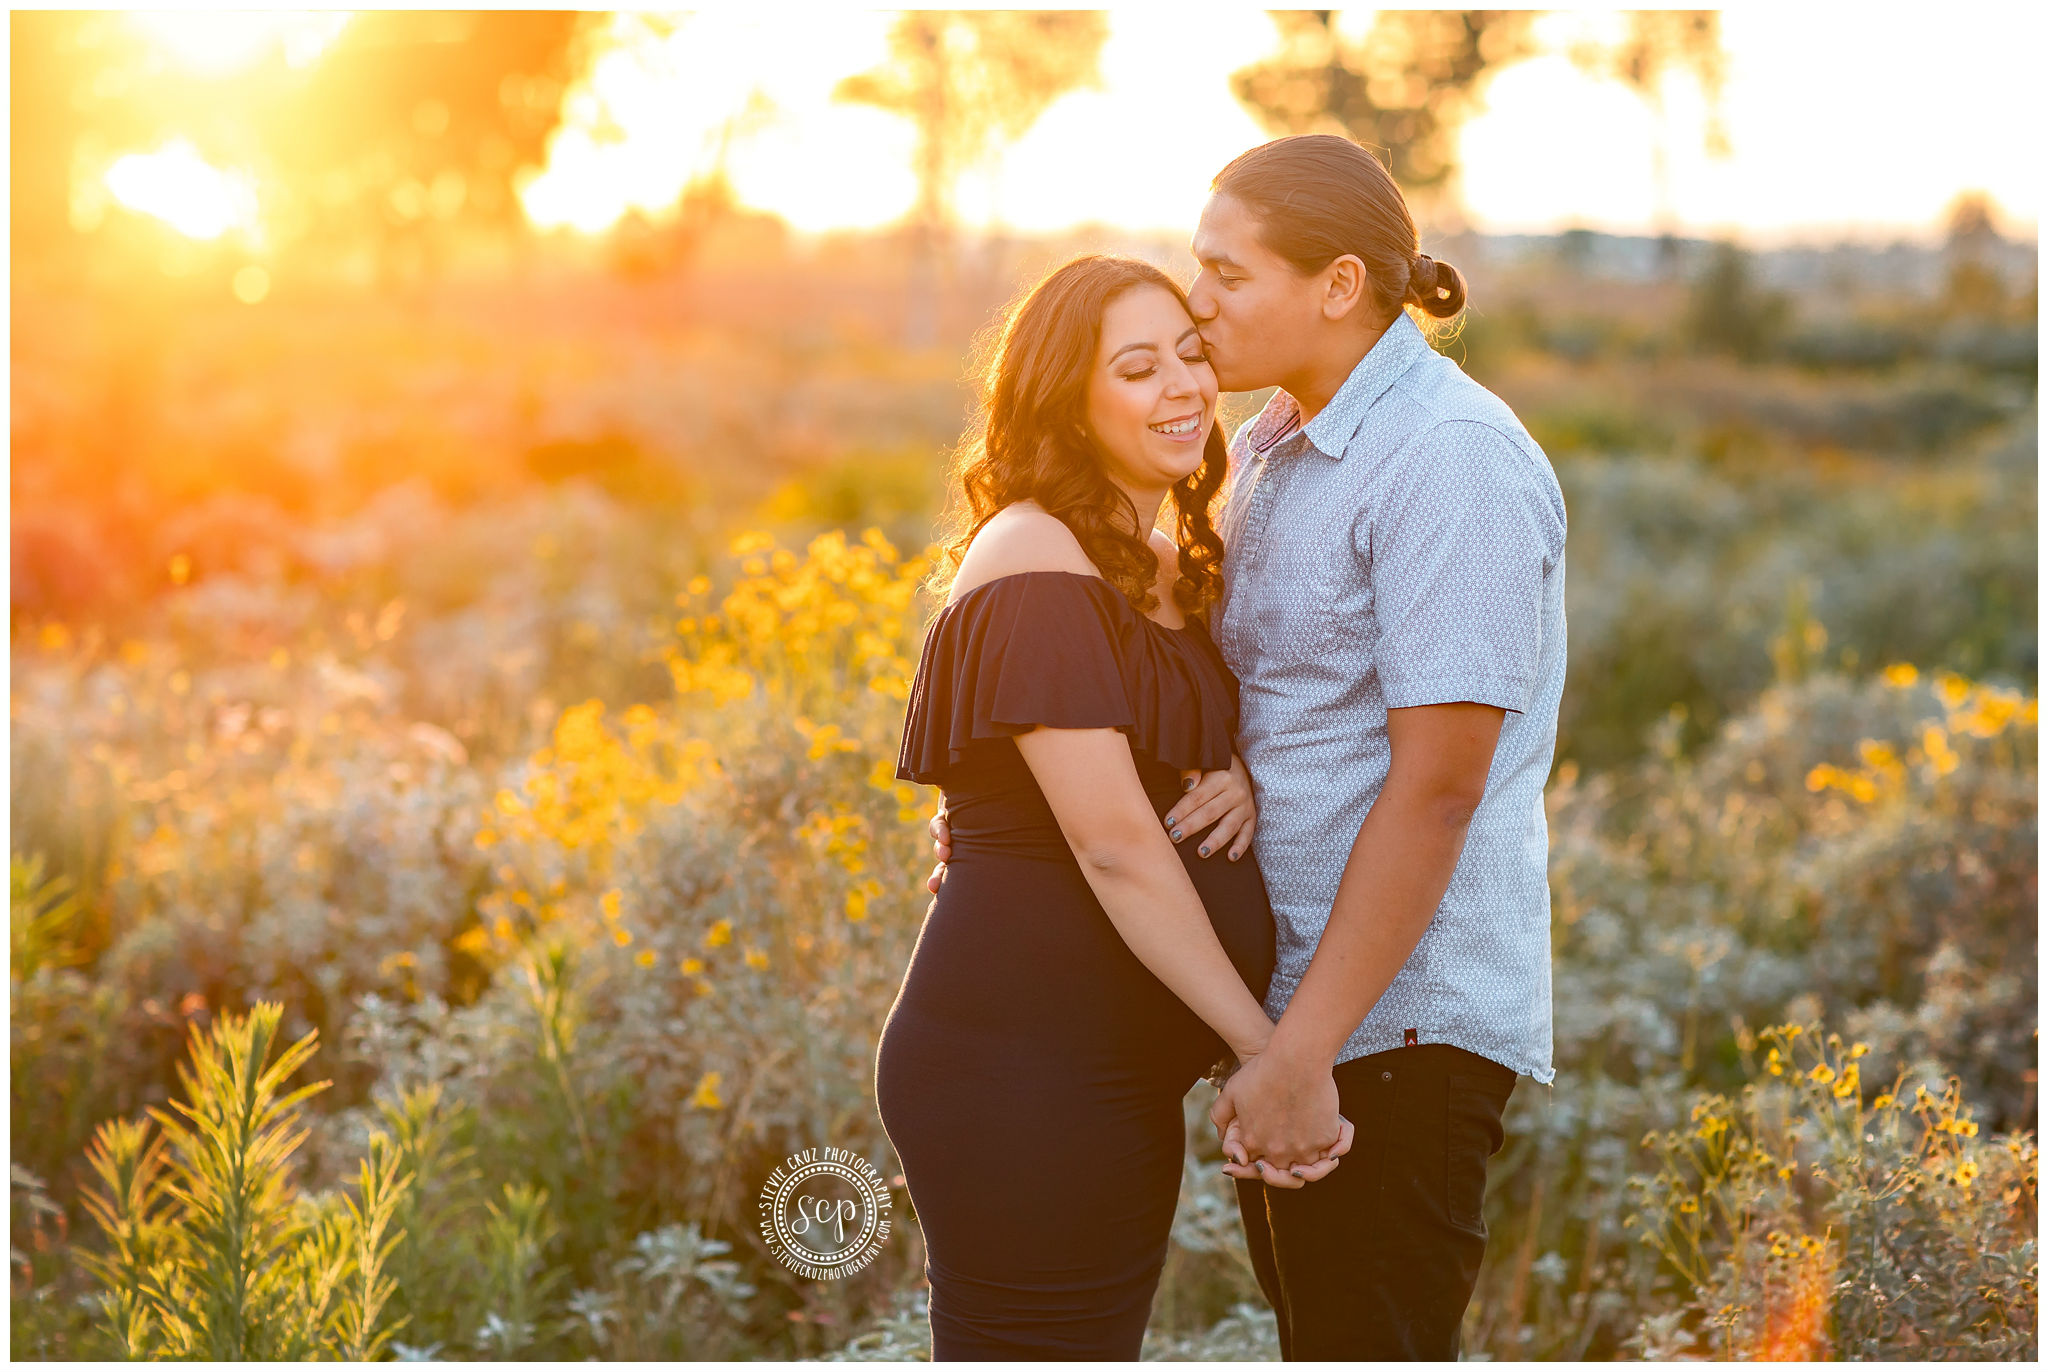 maternity photo ideas image